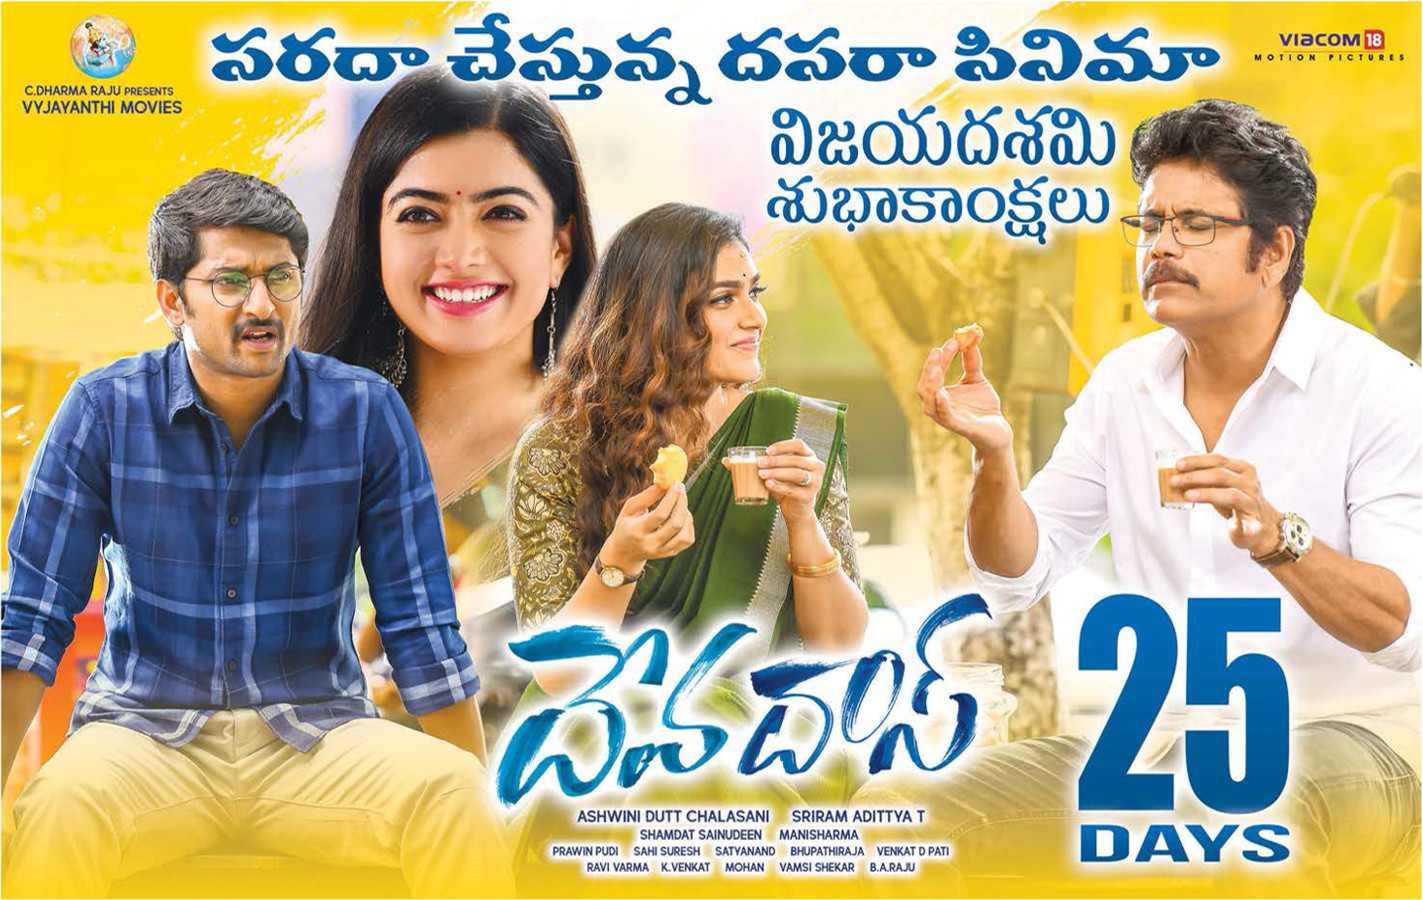 Nani, Rashmika Mandanna, Aakanksha Singh, Nagarjuna in Devadas Movie 25 Days Wallpapers